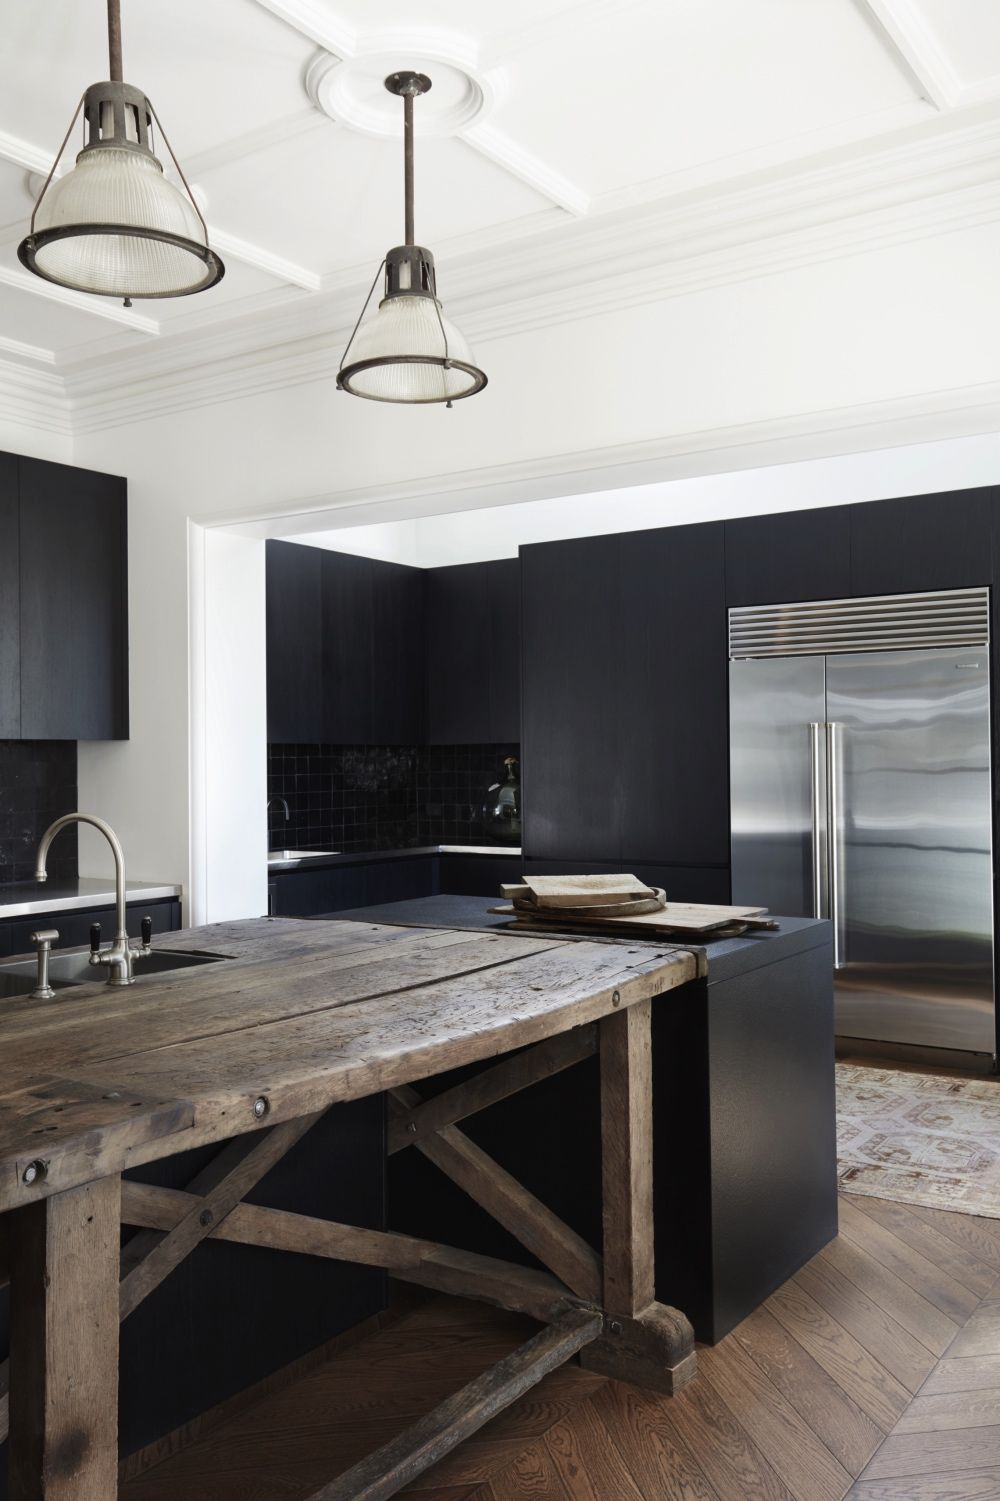 1850's Restoration Turns 3 Apartments Into 1 Home